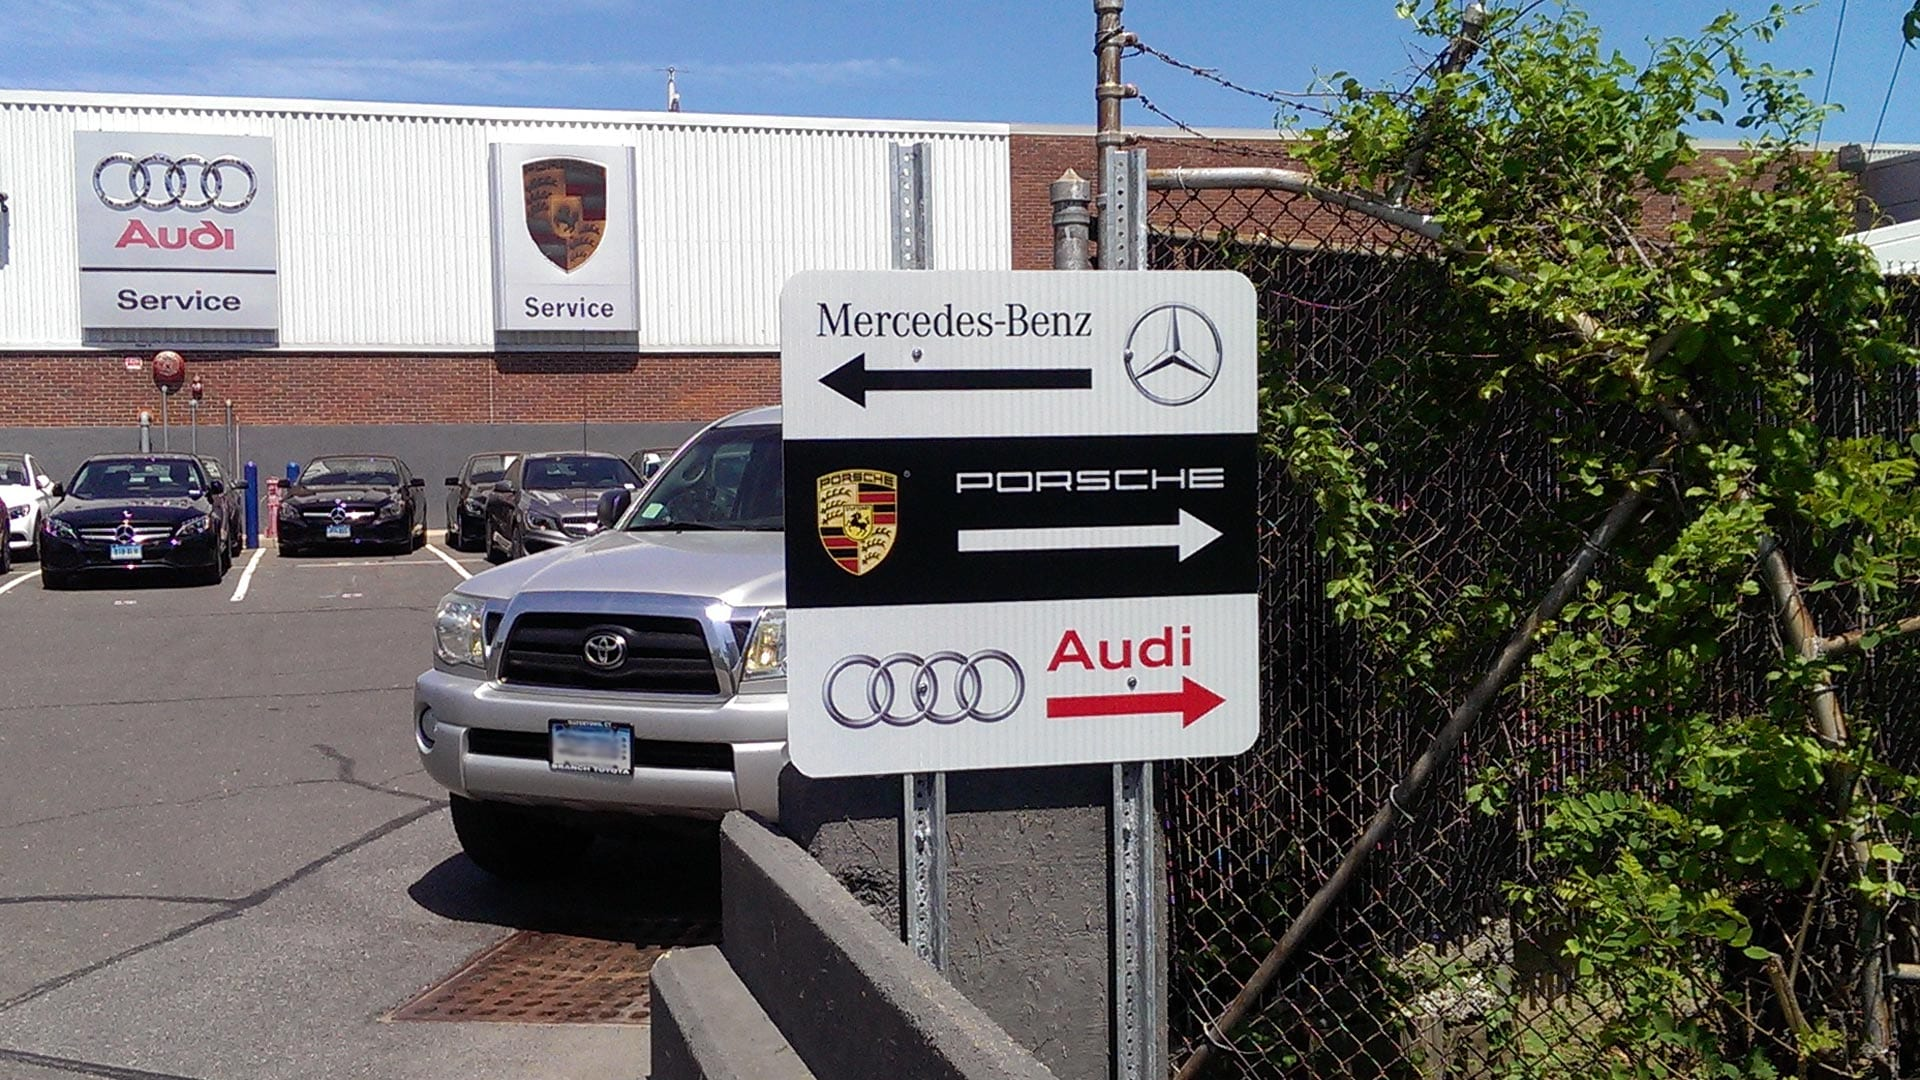 Danbury audi service department